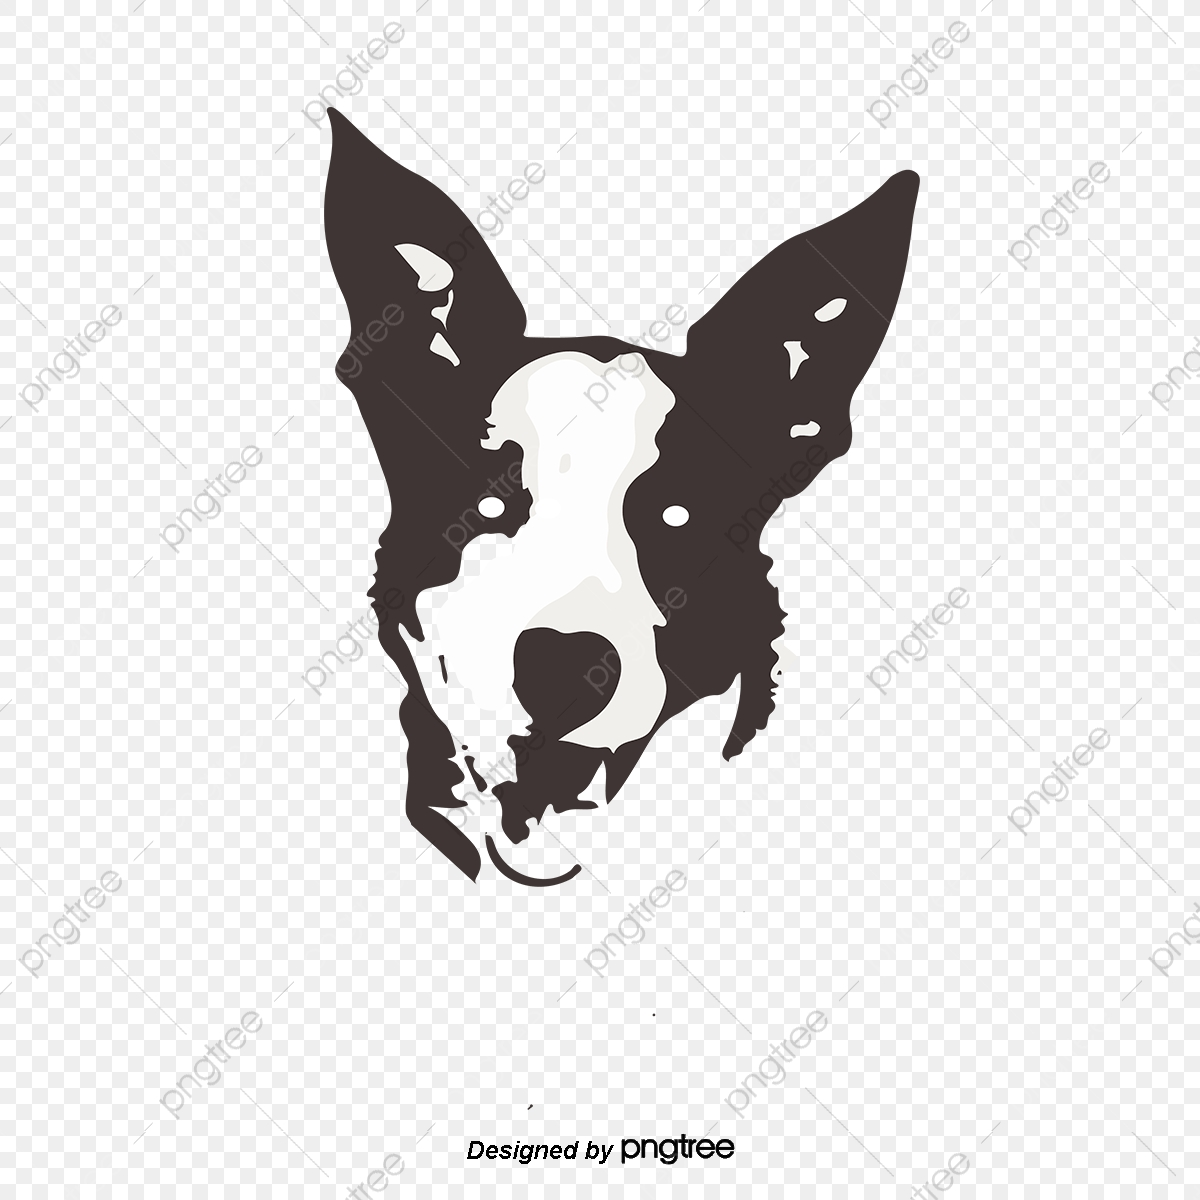 Black And White Dog Handsome Cartoon Dog Silhouette Cartoon Dog Cute Dog Dog Png And Vector With Transparent Background For Free Download